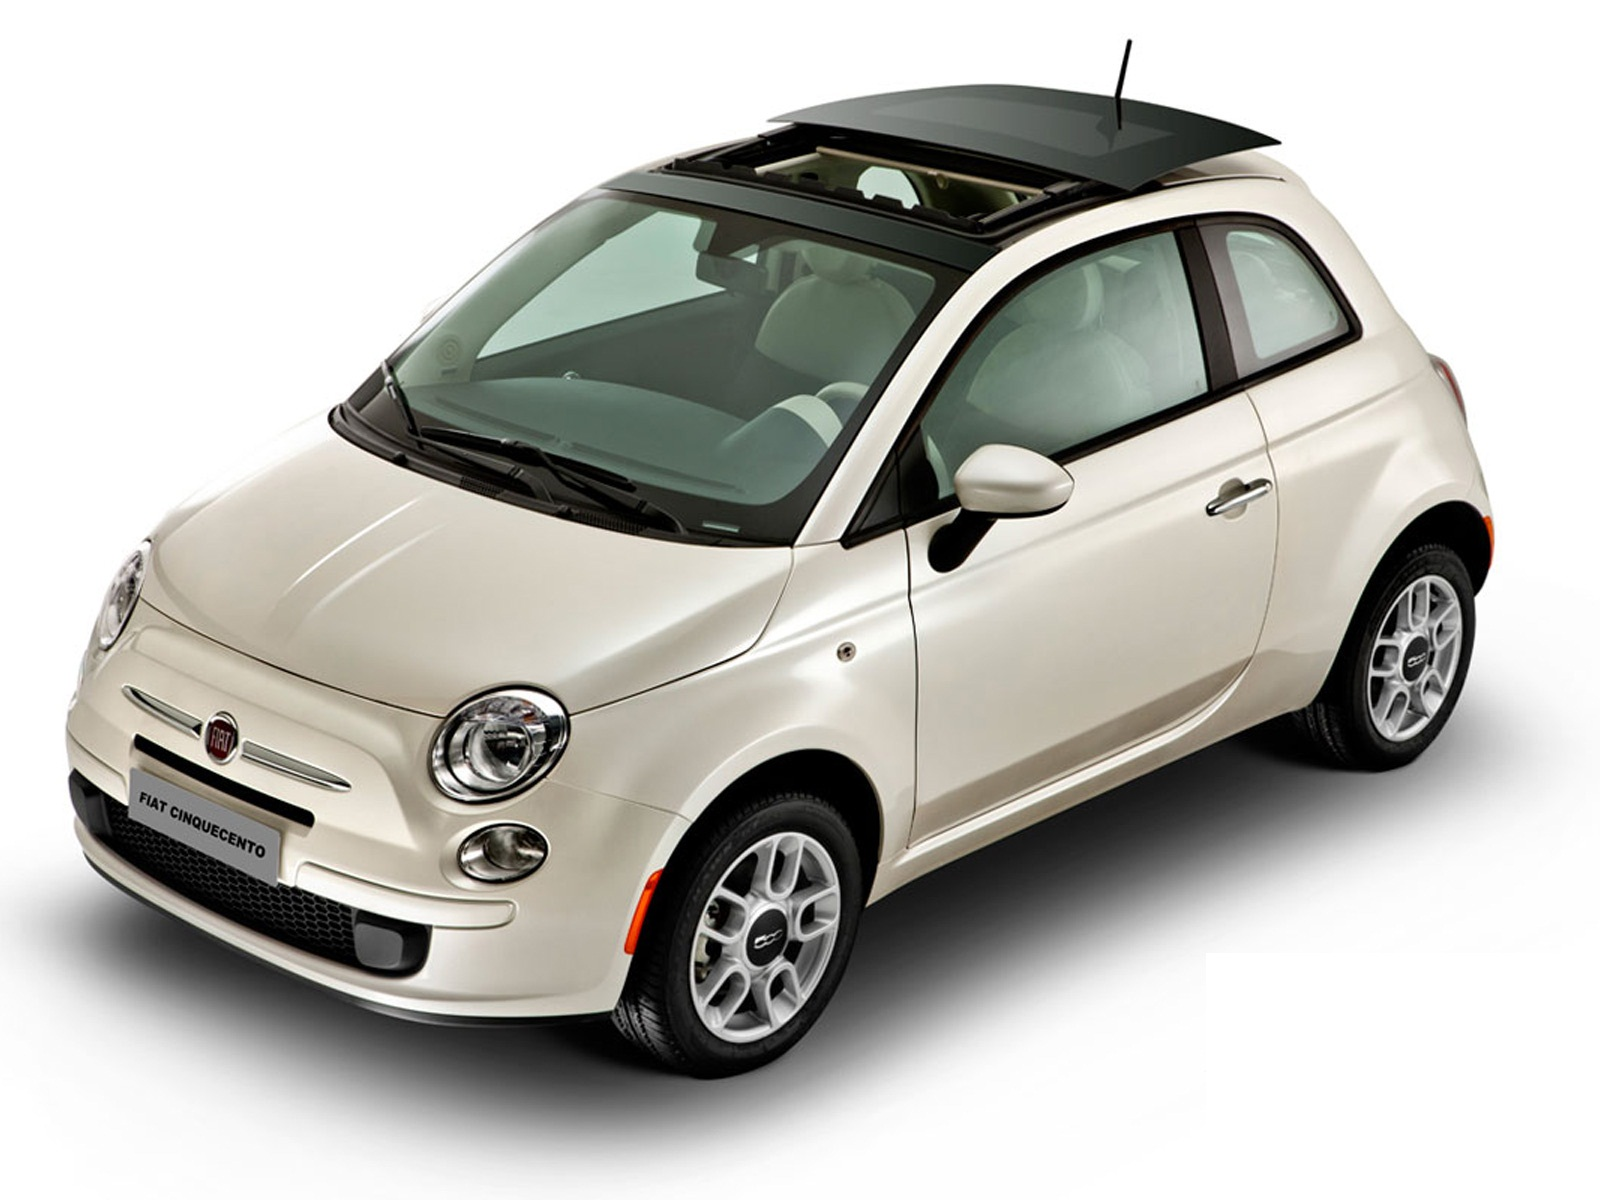 Fiat 500 2012 Screensavers For Free